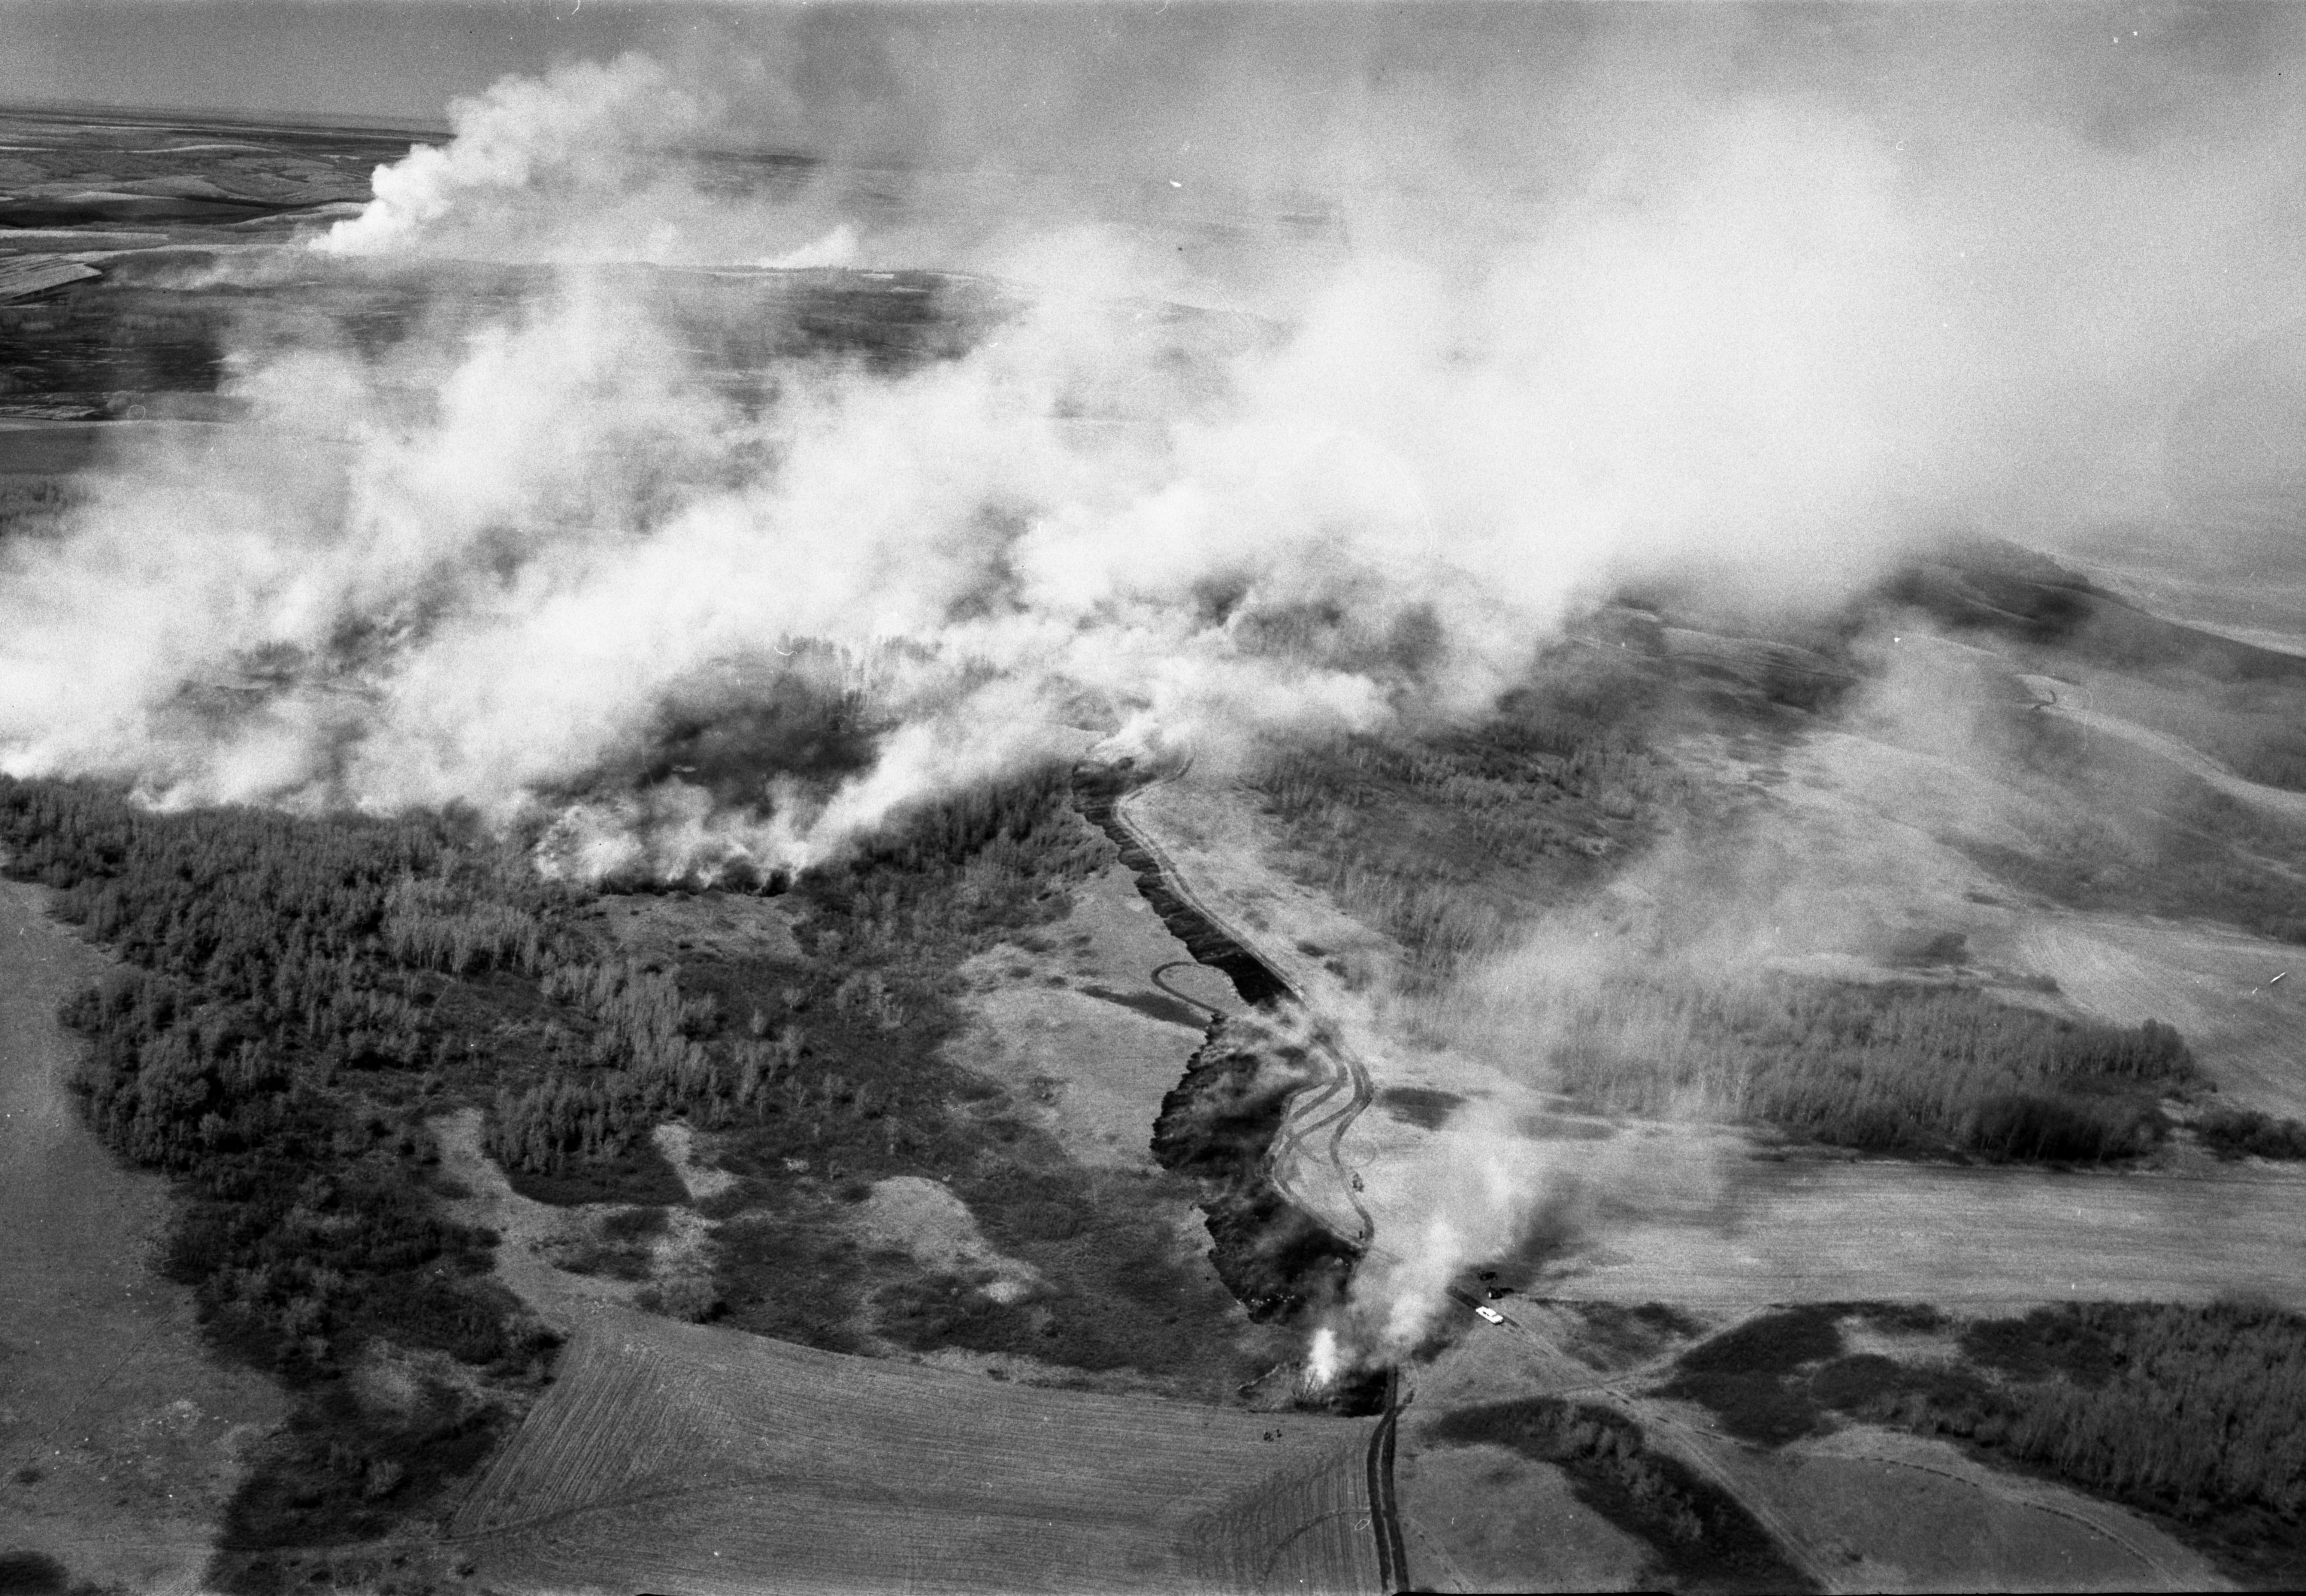 Aerial image of a forest fire.